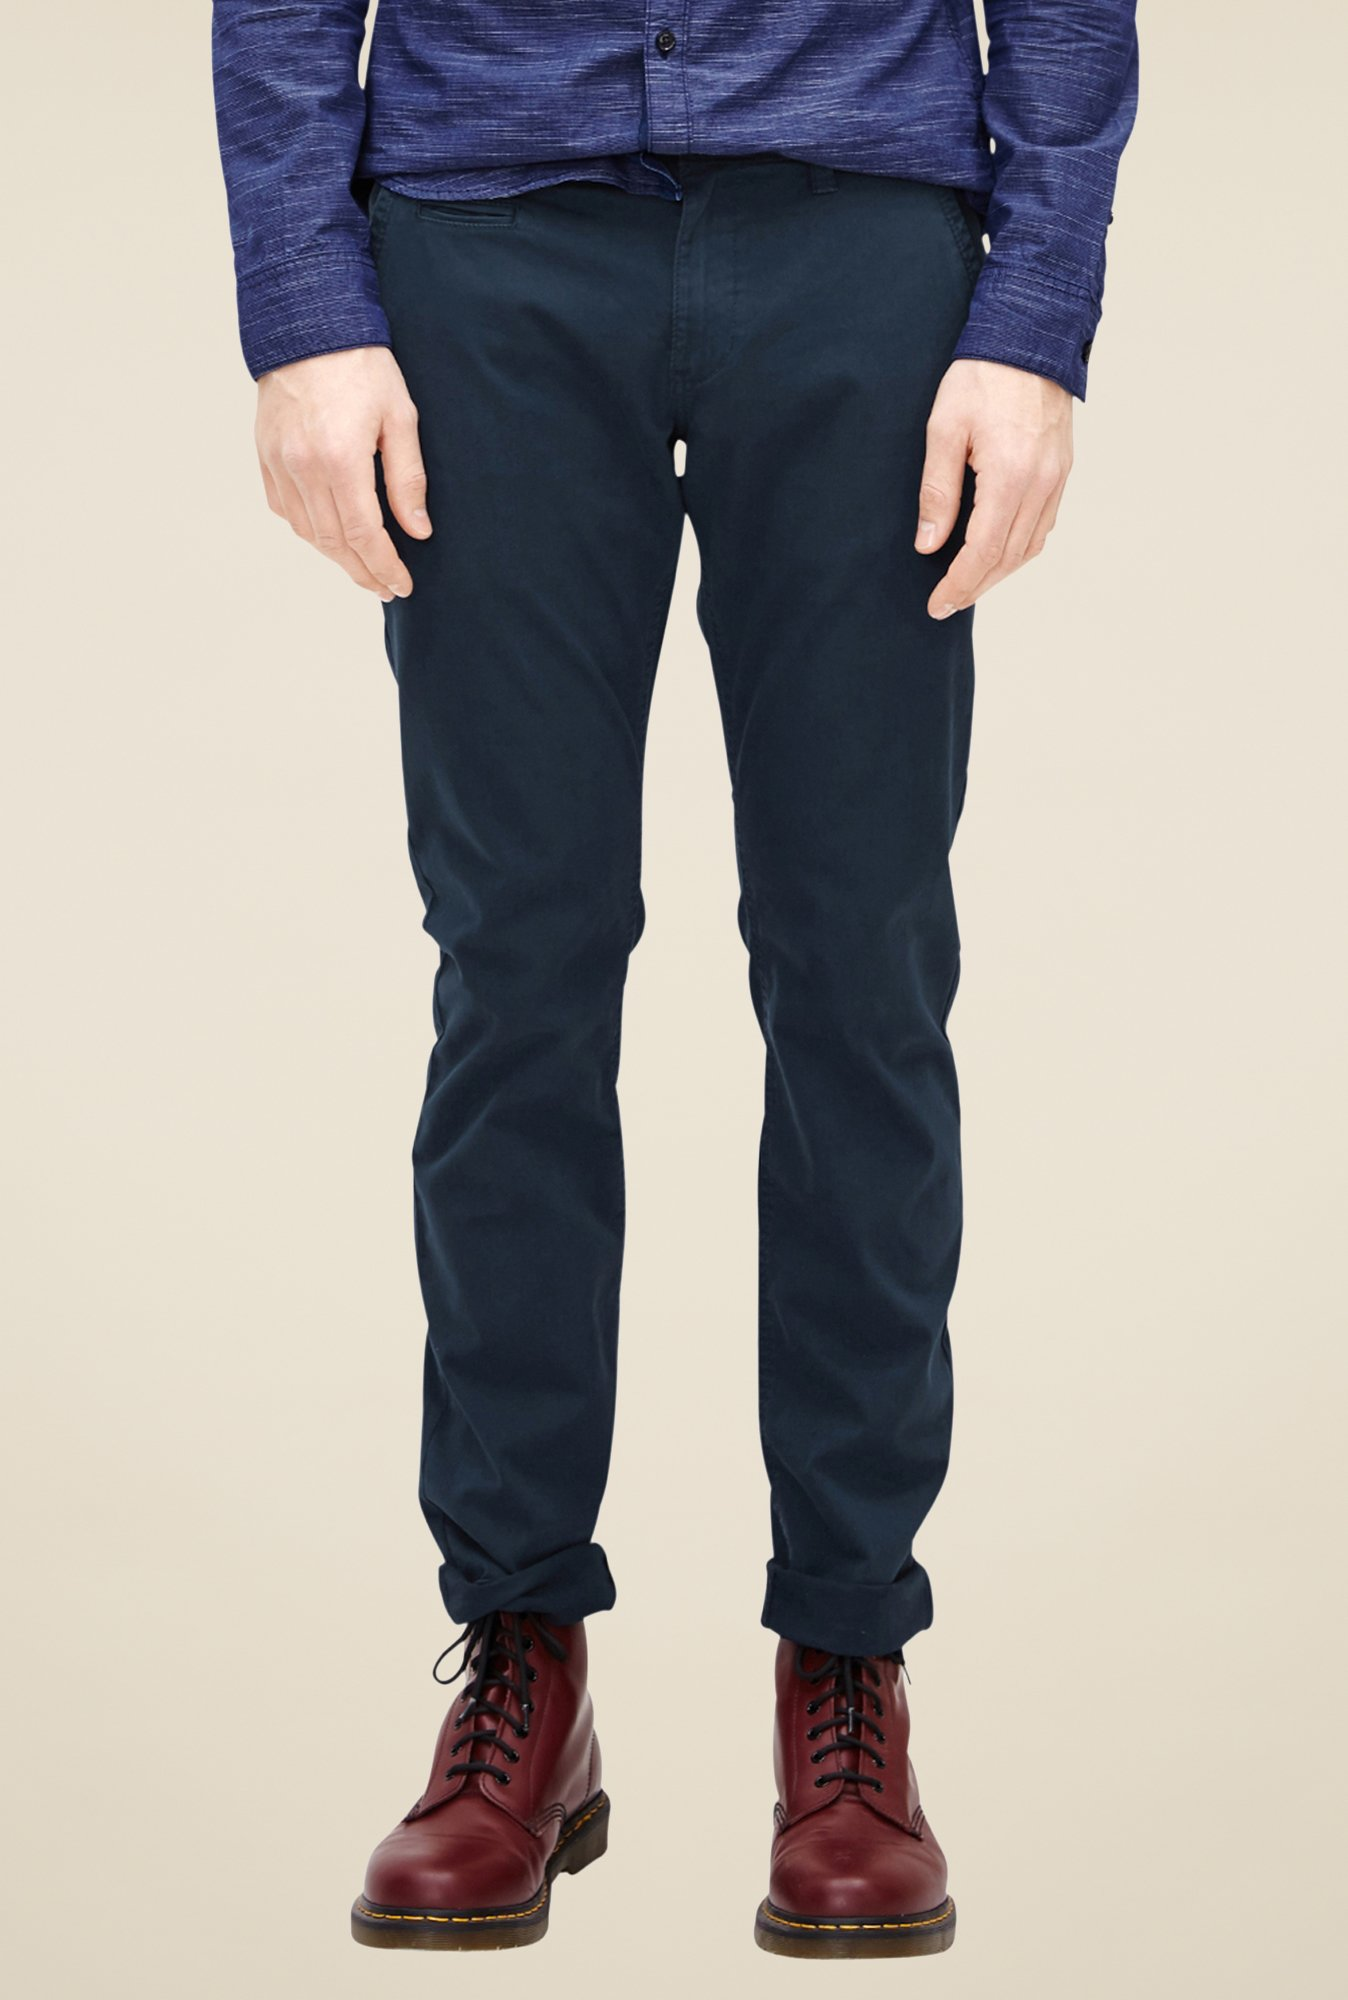 s.Oliver Navy Solid Chinos